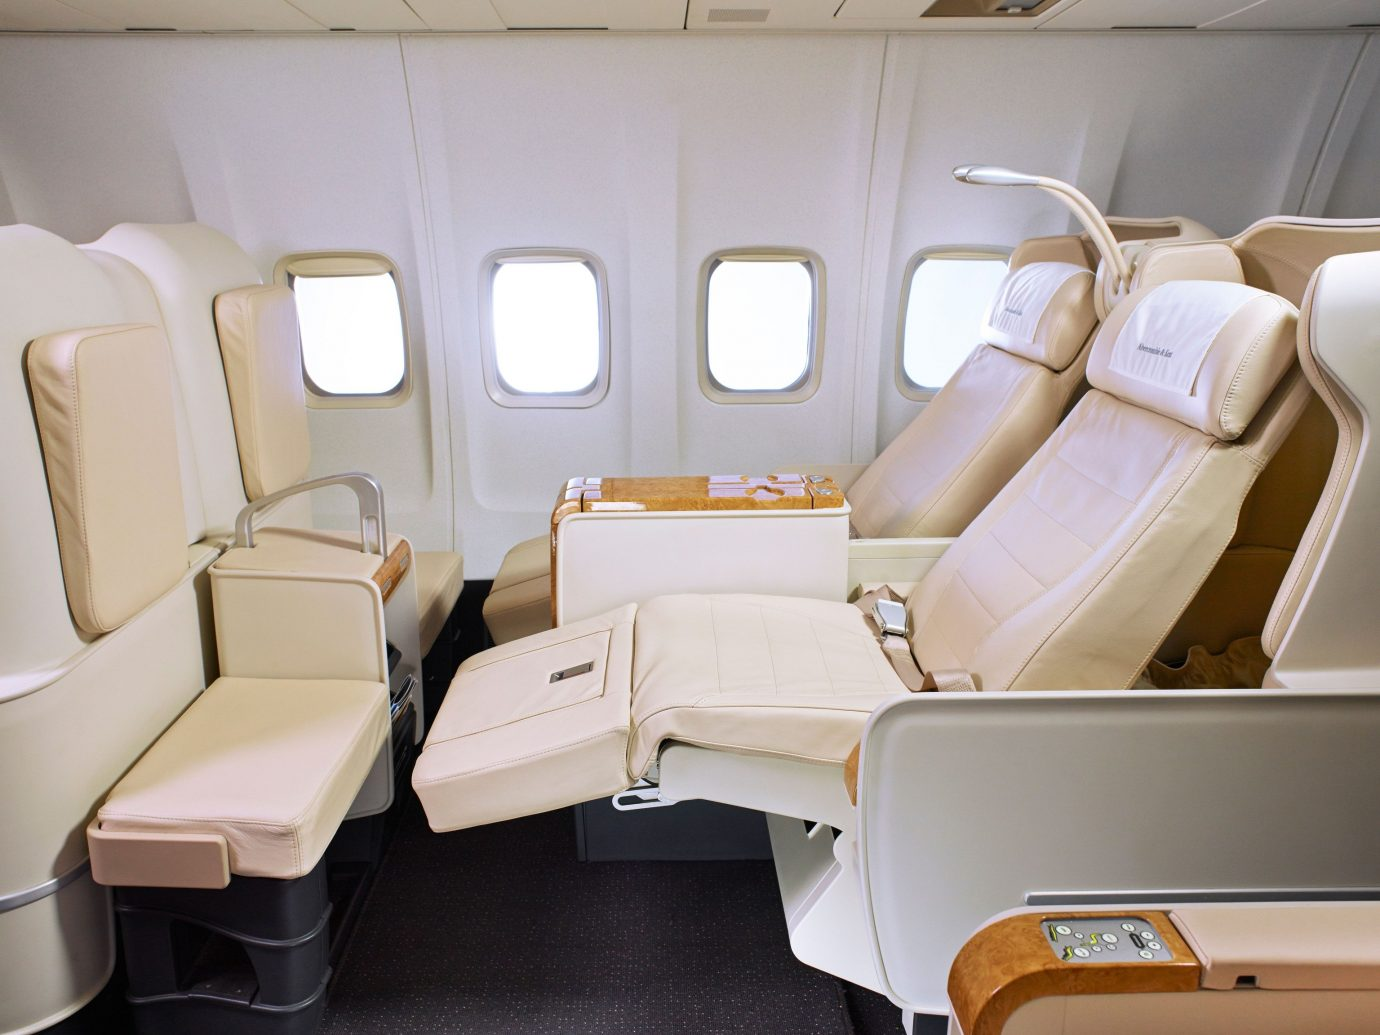 Luxury Travel Trip Ideas indoor floor airline vehicle Cabin aircraft cabin passenger furniture